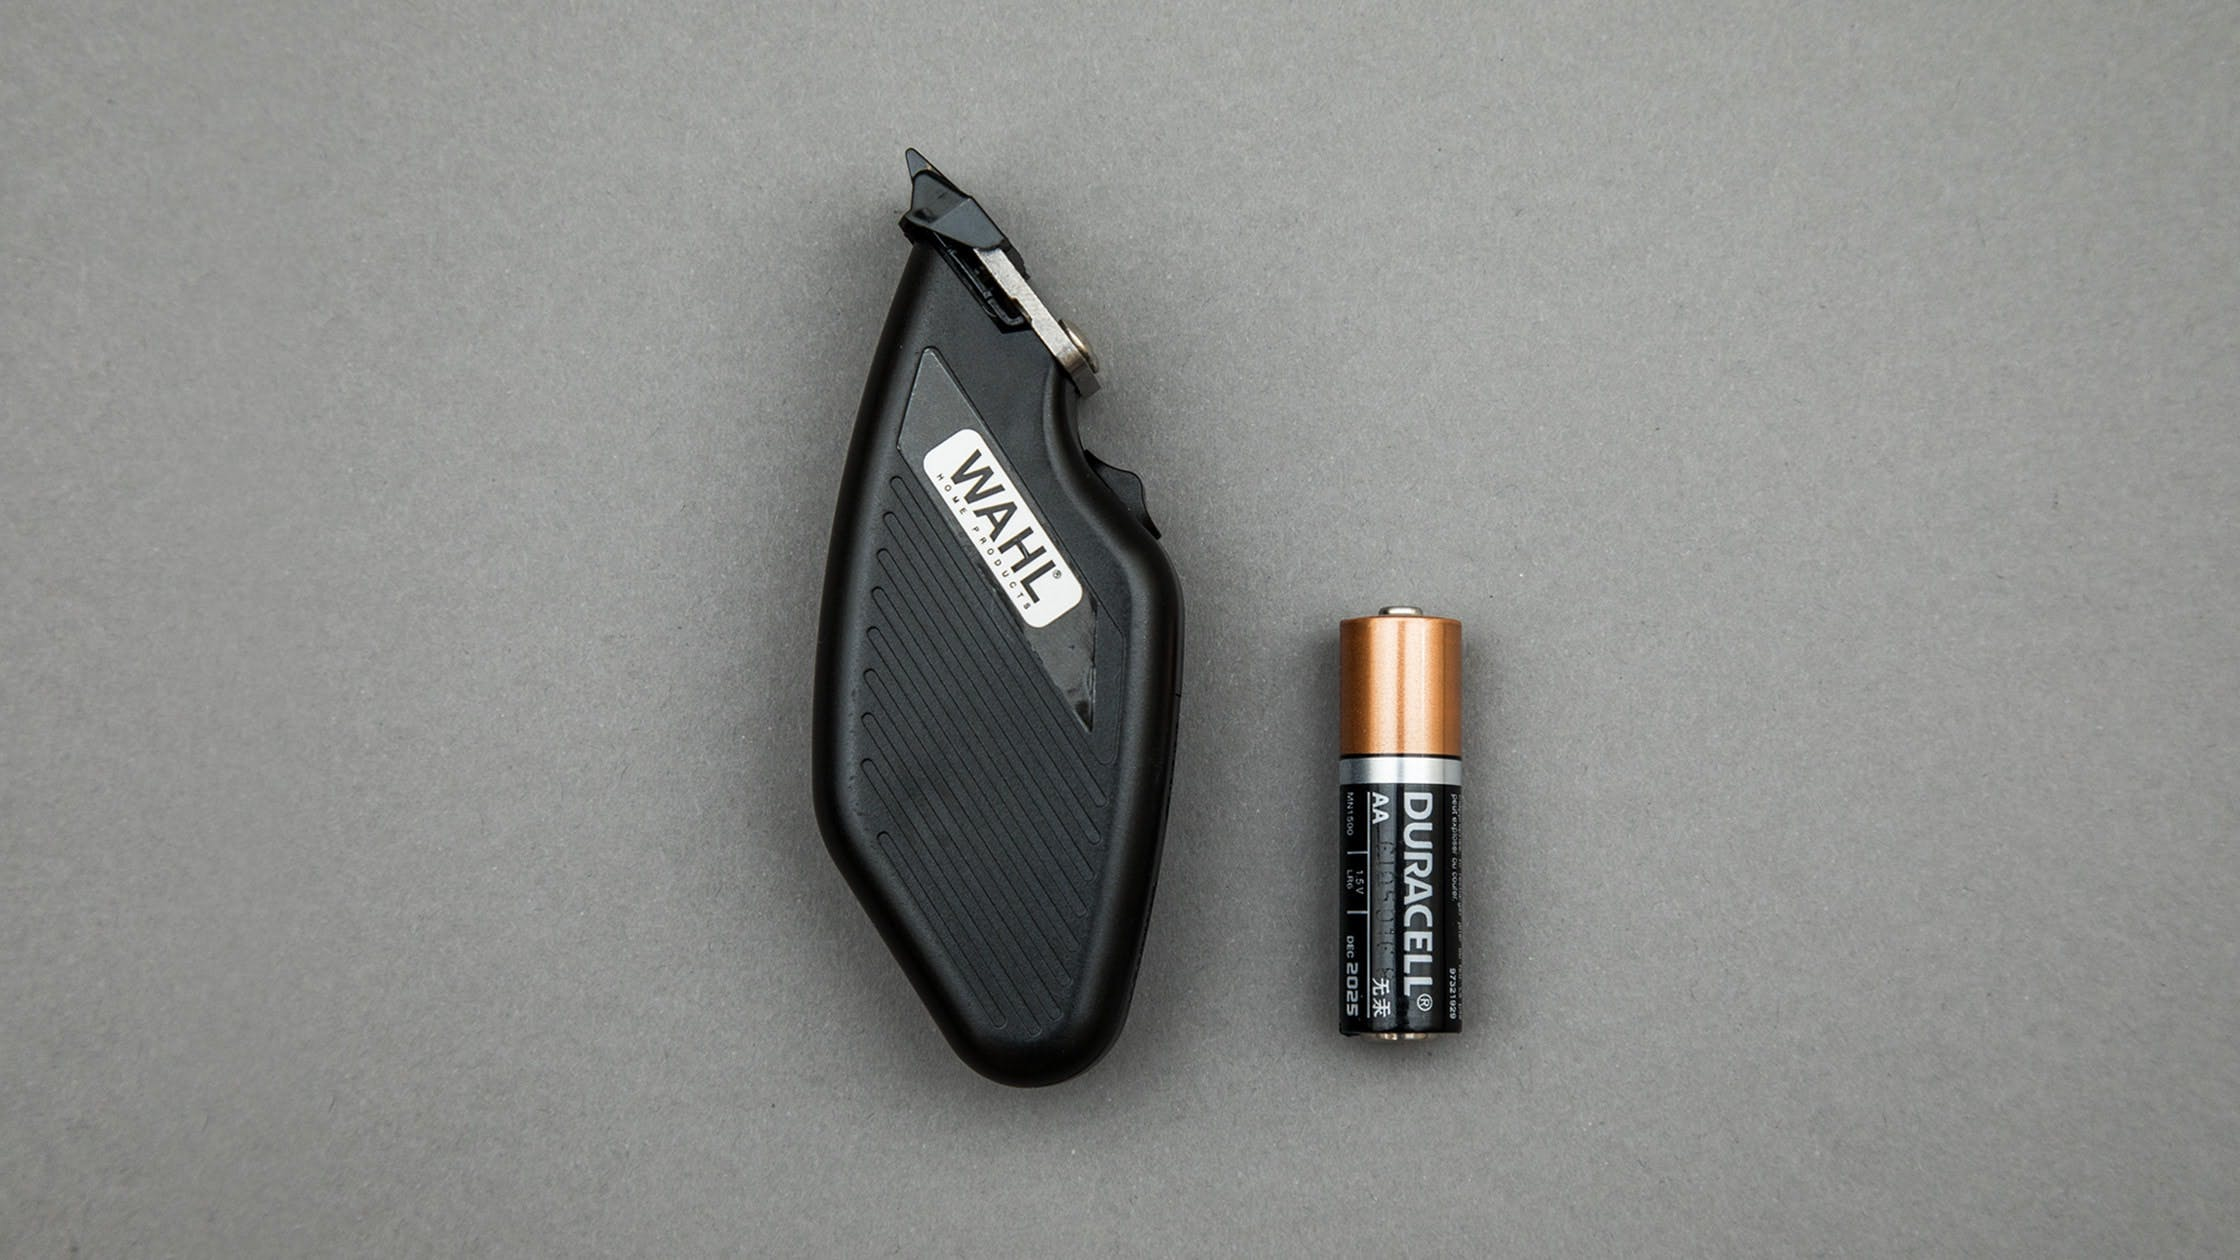 The WAHL Compact Travel Trimmer and a AA Battery